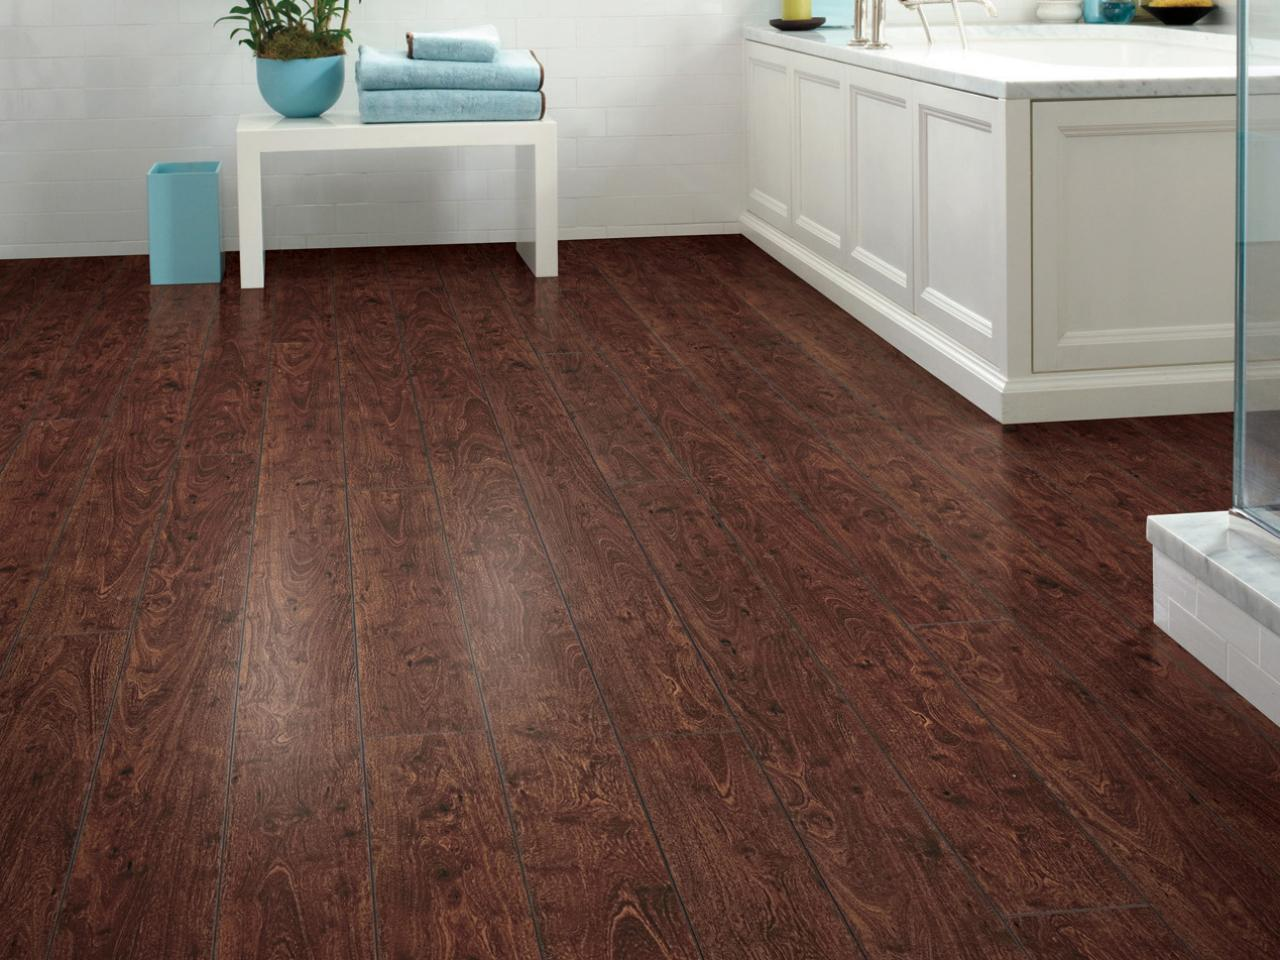 Laminate flooring options laminate flooring for basements GZDGNAD